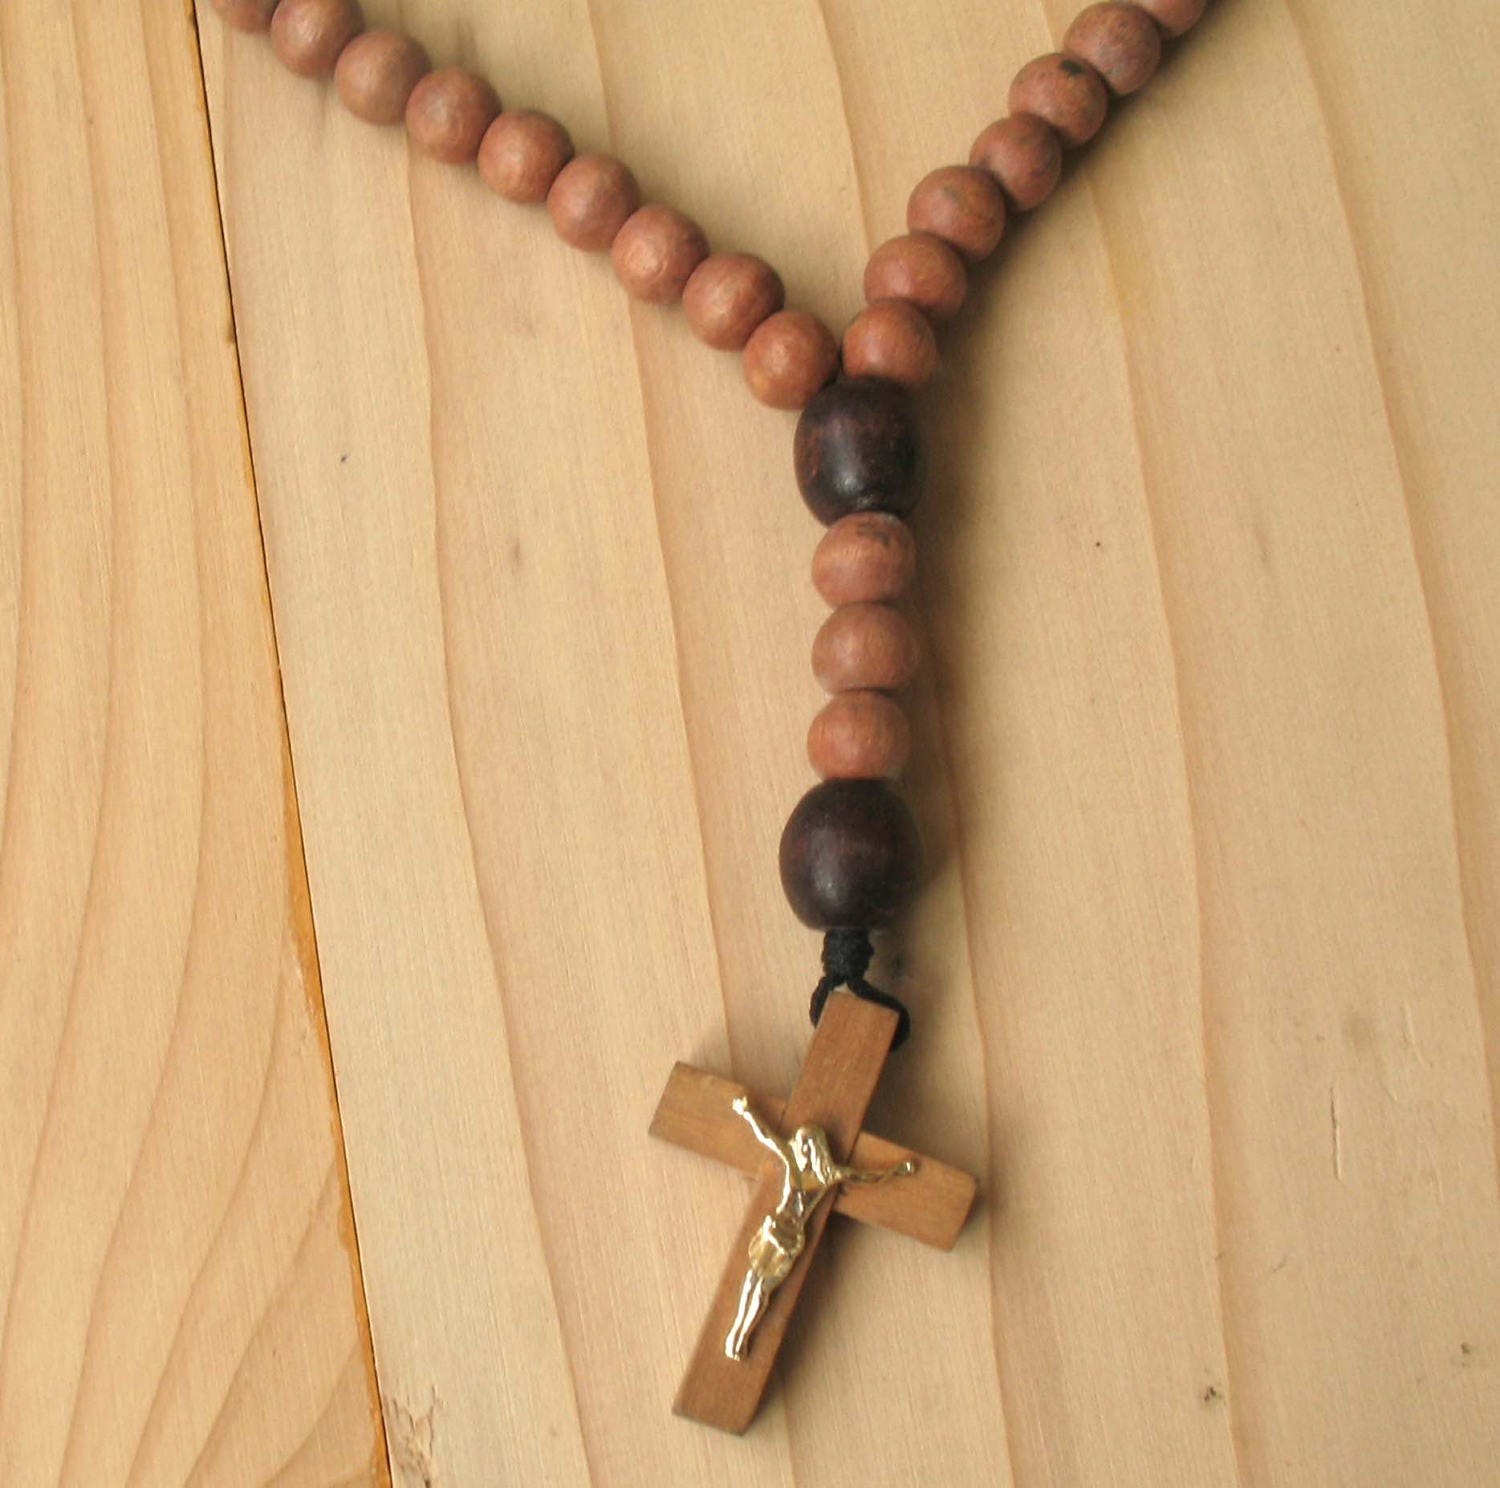 Vintage Wood Rosary Rosary Cross Wooden Cross Wooden Beads Cross Vintage Rosary Vintage Beads Cross Rustic Rosary Beads Rustic Wooden Cross